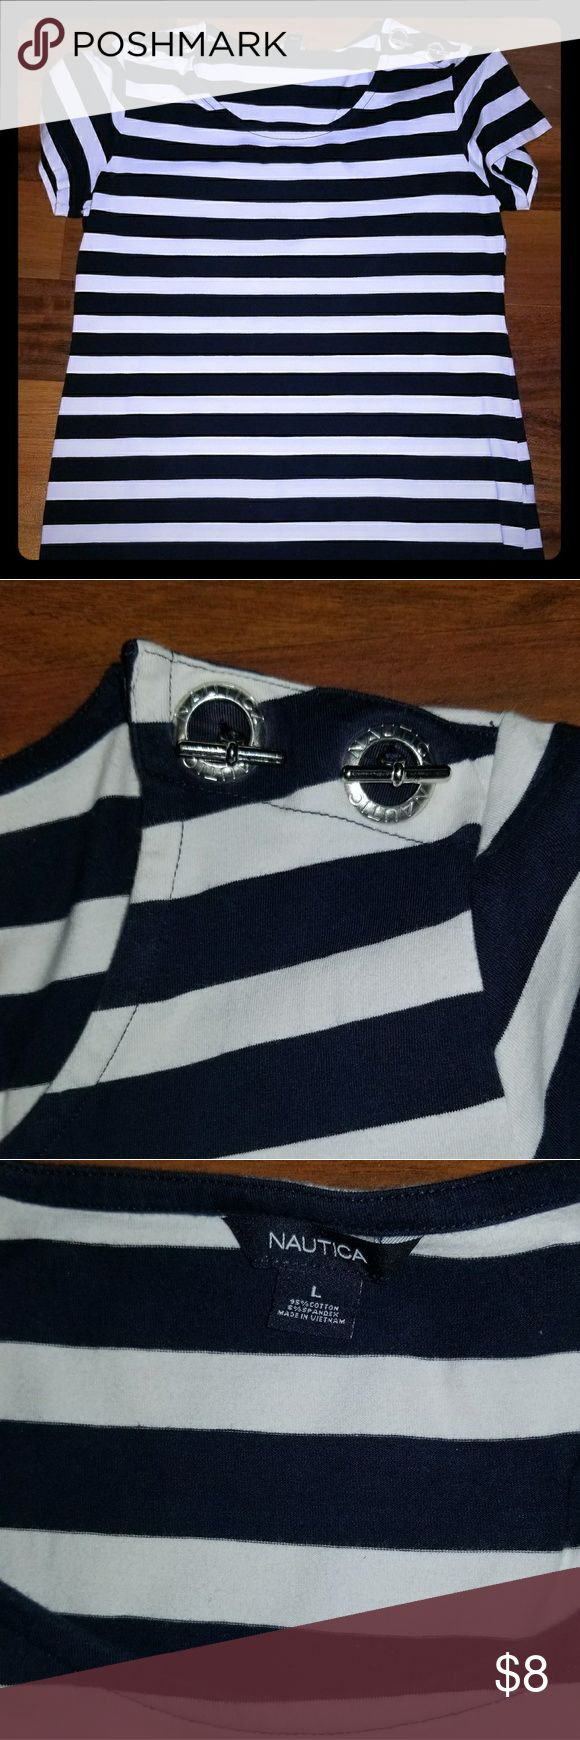 Nautica women's top Stretch, blue and white striped shirt with silver nautical details on the shoulders. Like new condition. Nautica Tops Blouses